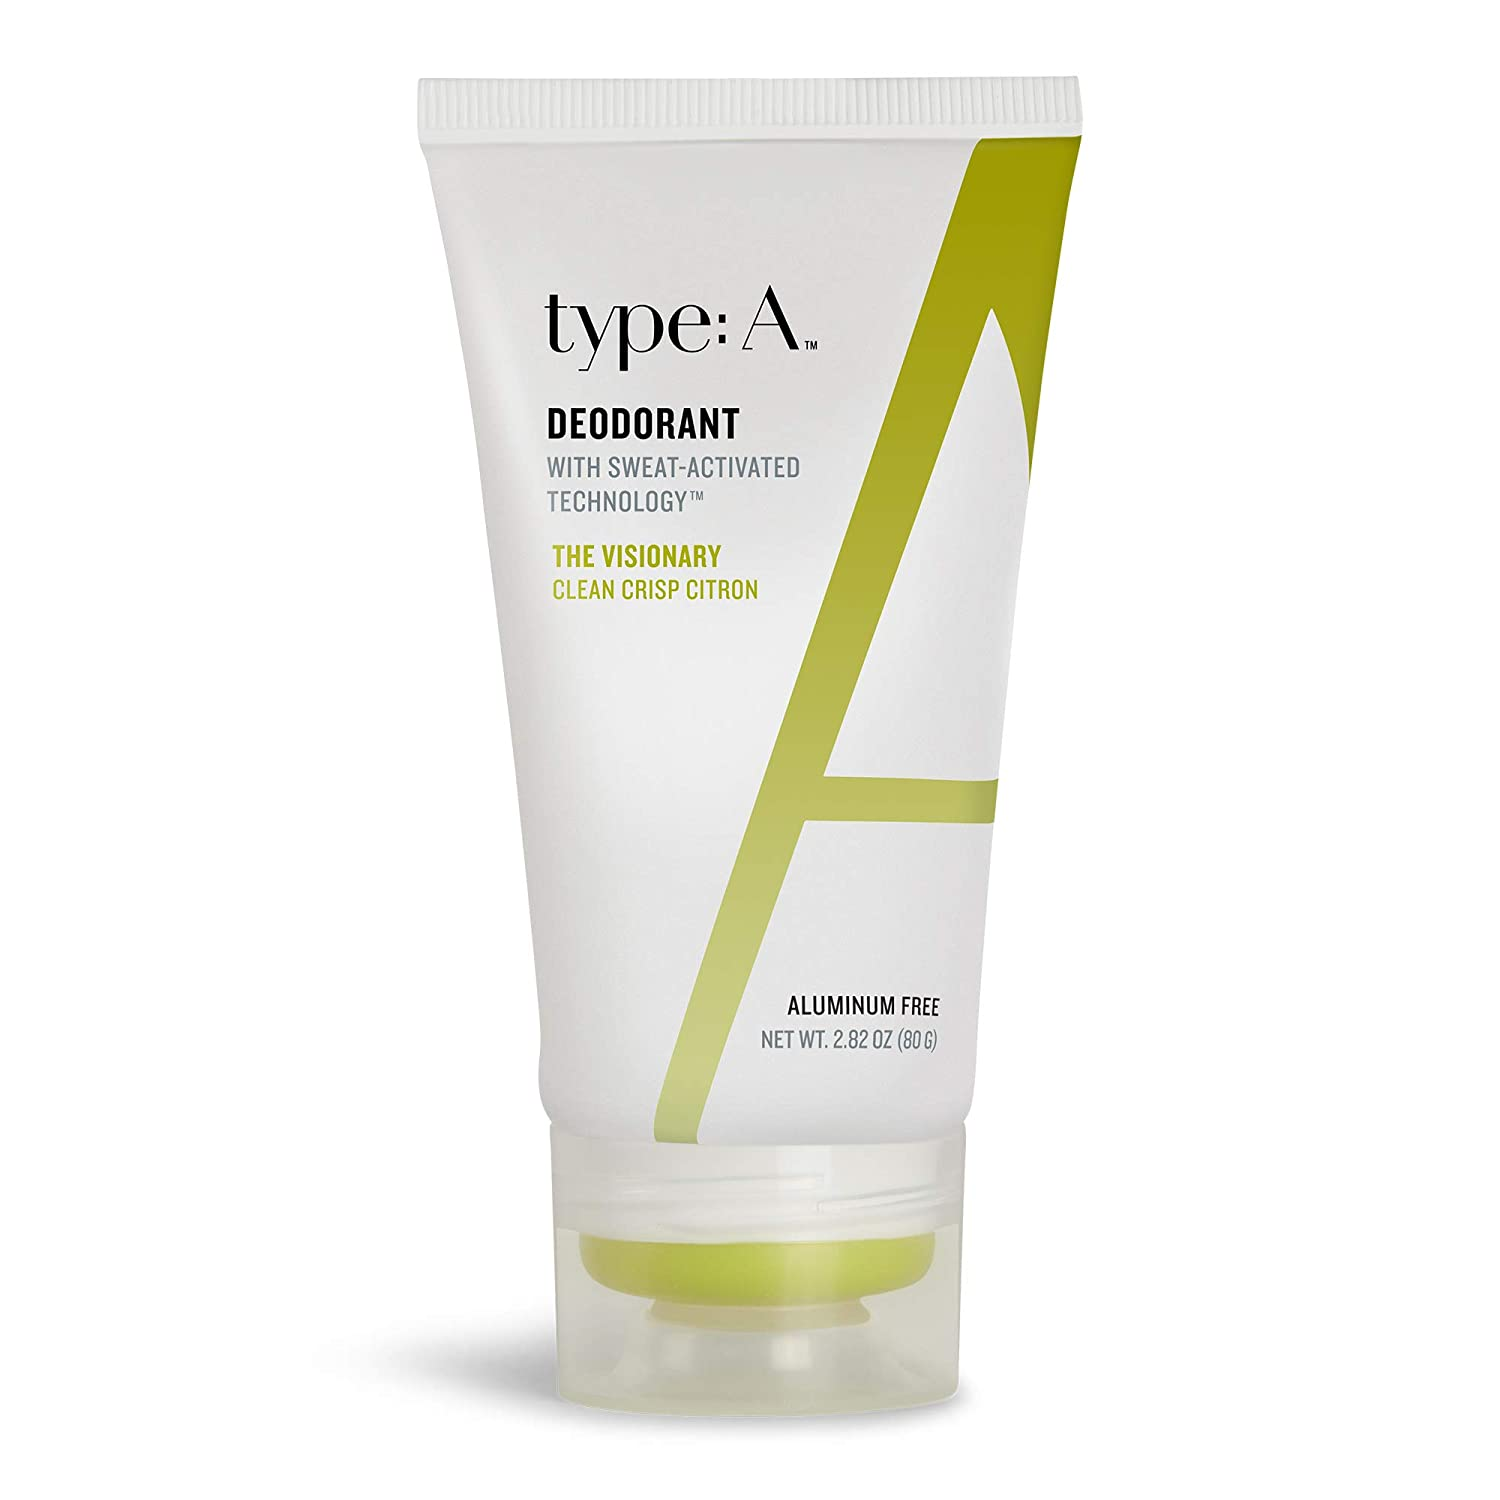 type:A Deodorant - Aluminum Free Deodorant for Women and Men